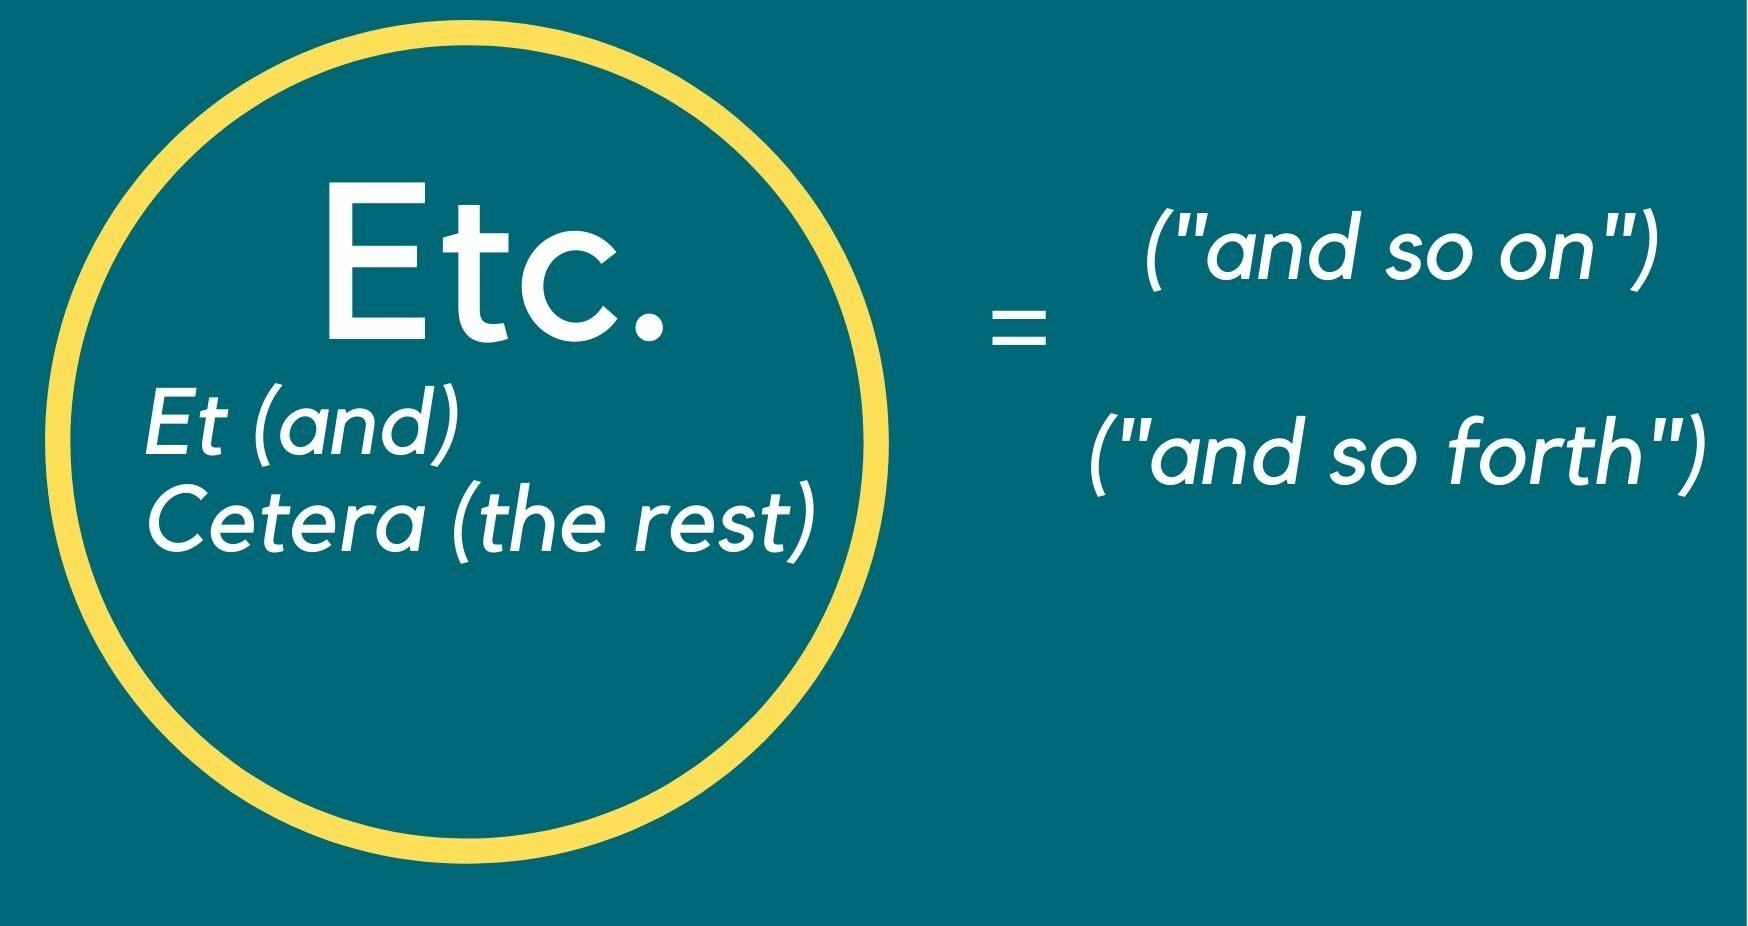 """Explaining Etc. (et (and) cetera (the rest) to mean """"and so on"""" and """"and so forth"""""""